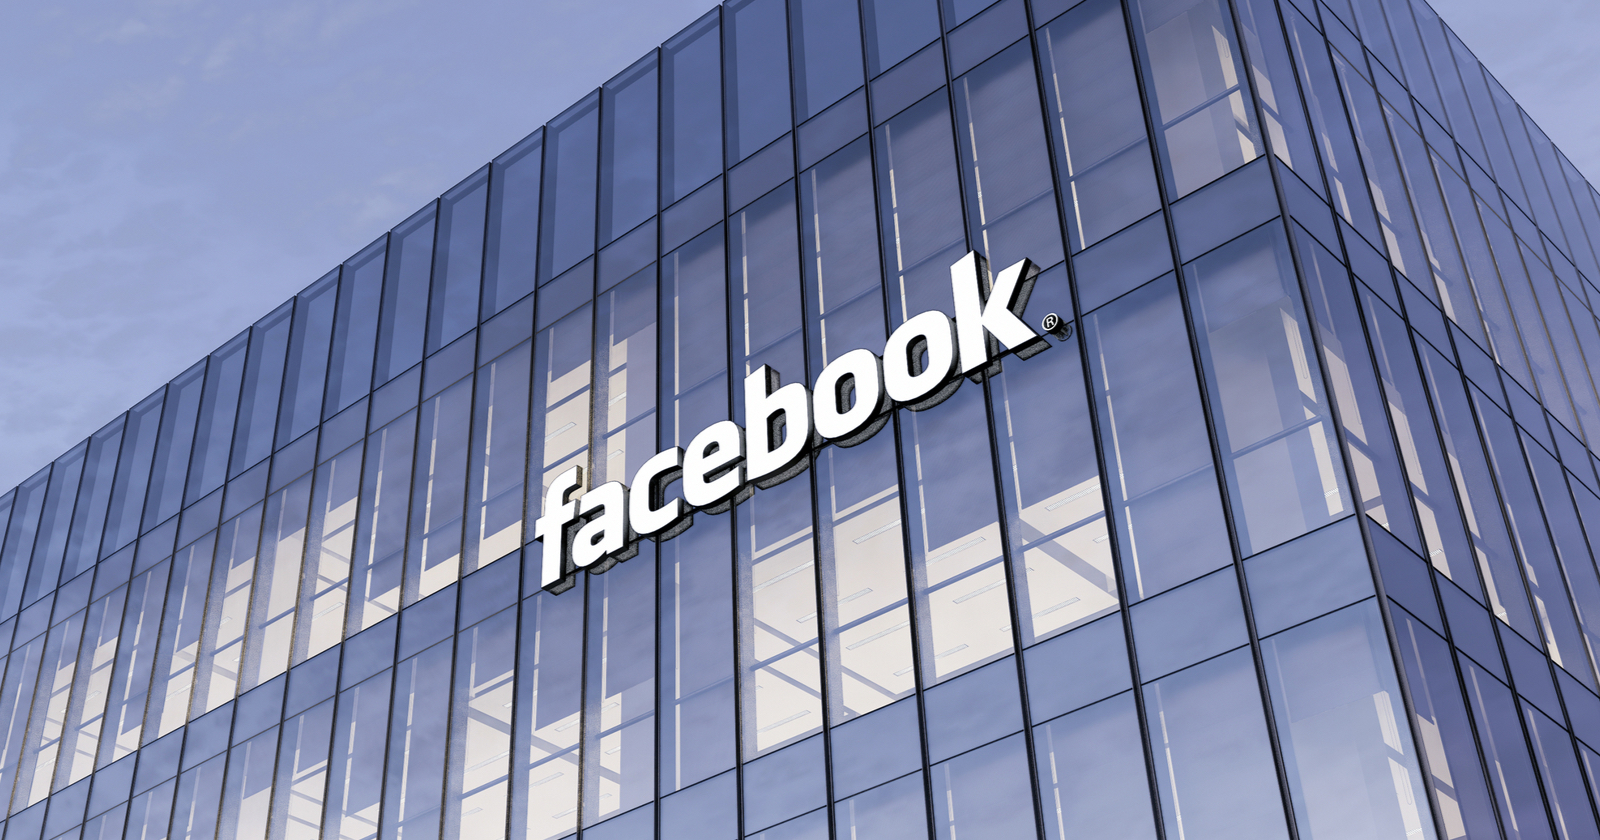 Facebook Shares 4 Ways It's Improving News Feed Ranking - Search Engine Journal